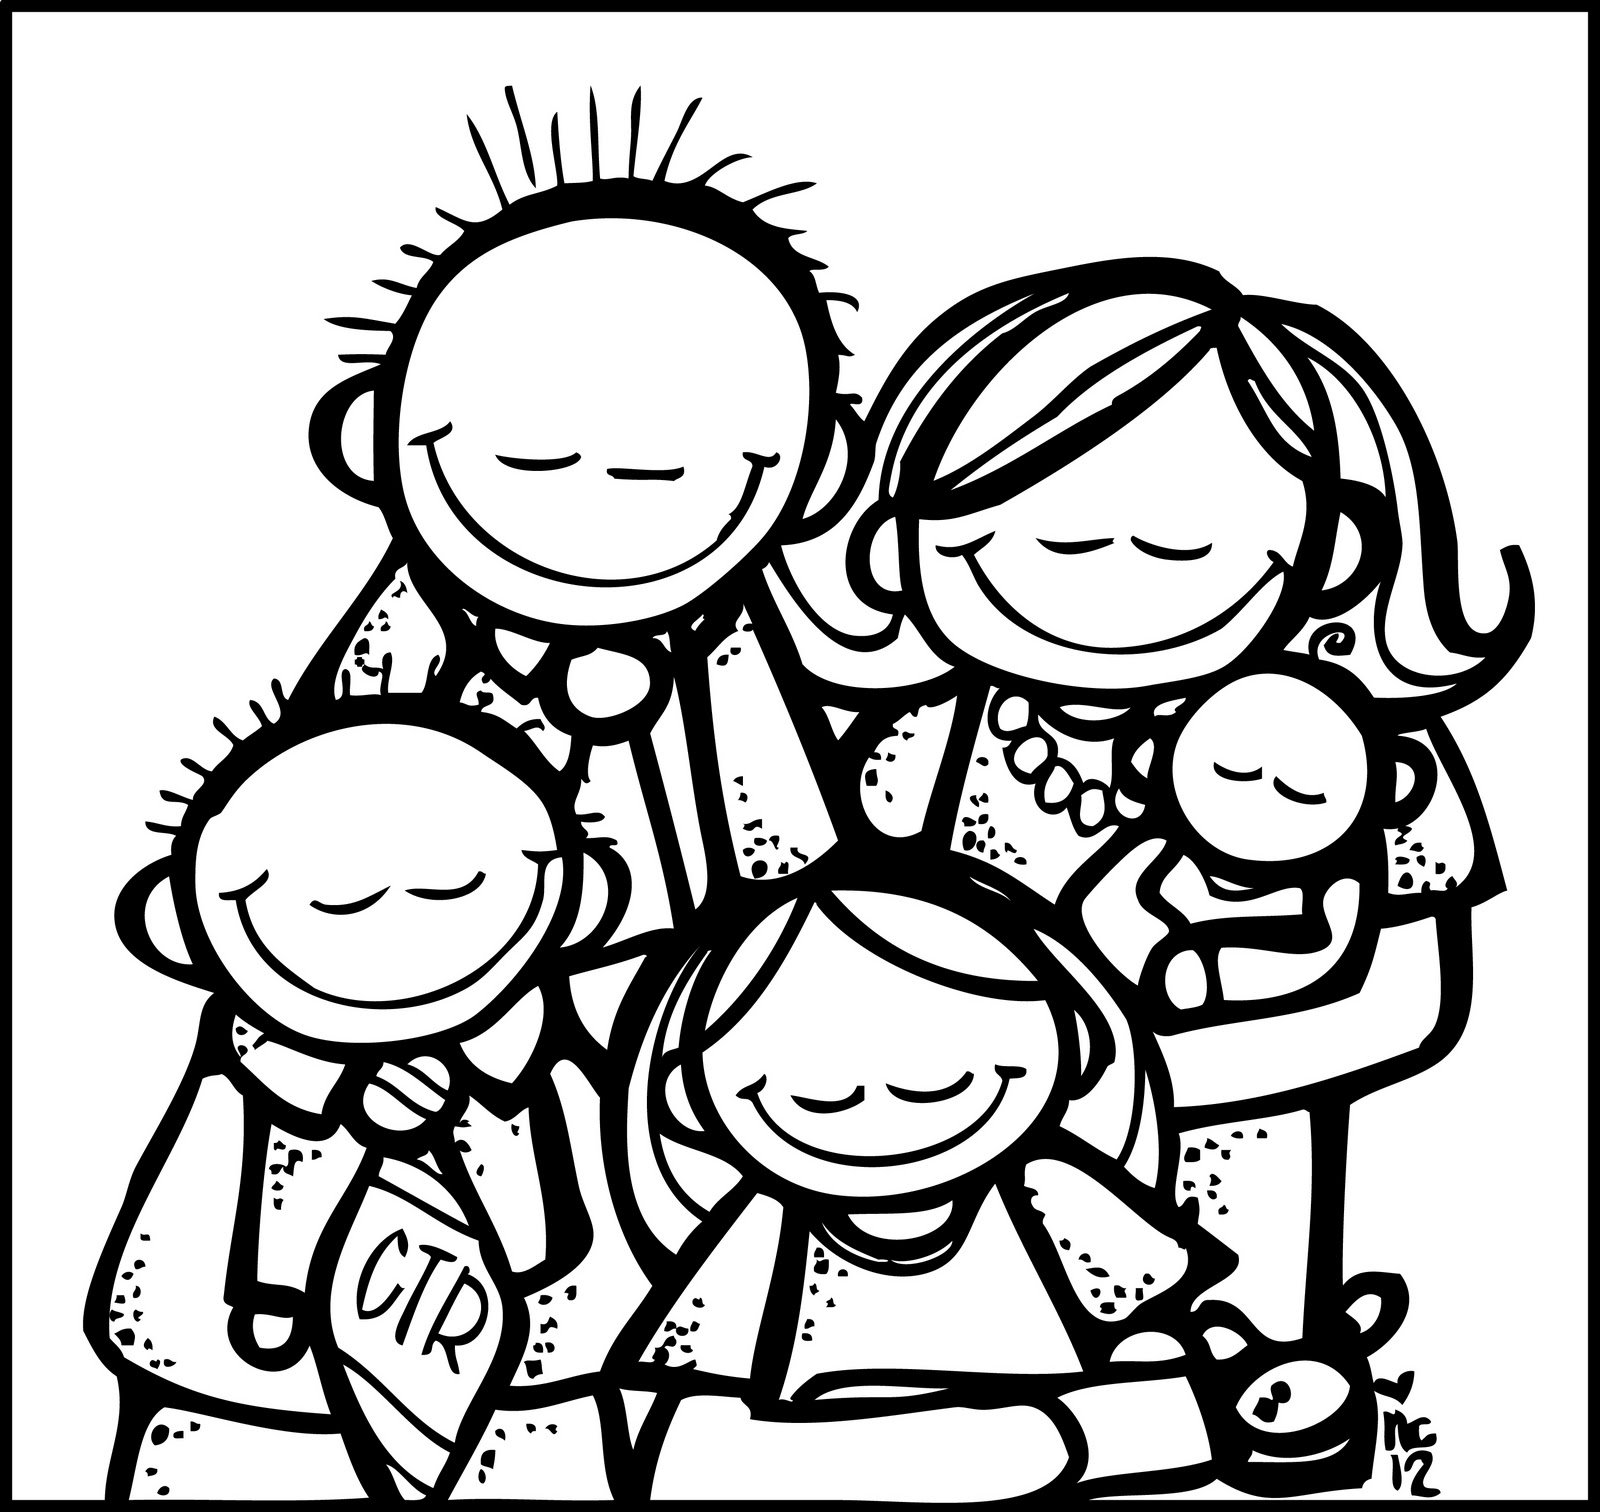 hight resolution of family black and white black family praying clipart